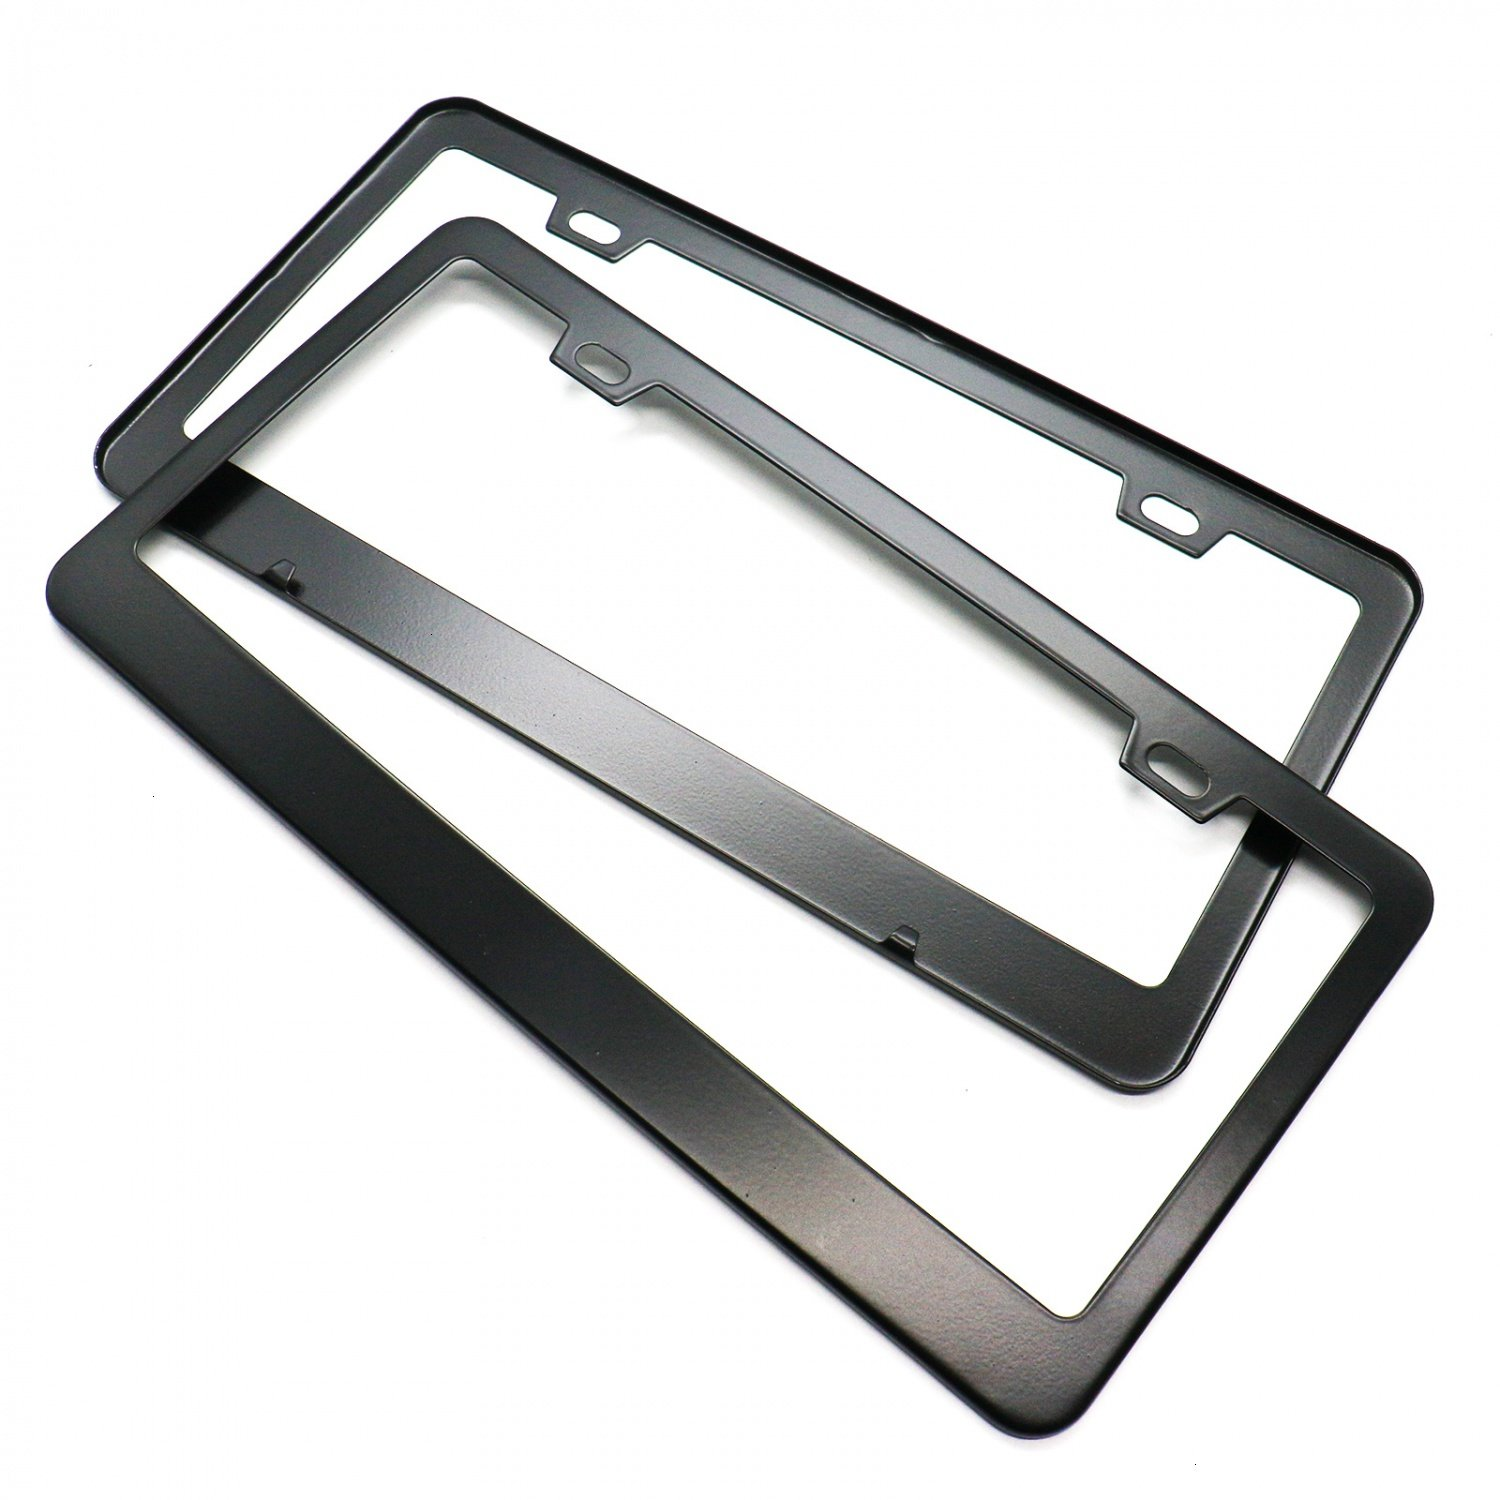 HUELE 2 Pcs Stainless Steel Car License Plate Frames Covers 2 Holes with Screw Caps Polished Black